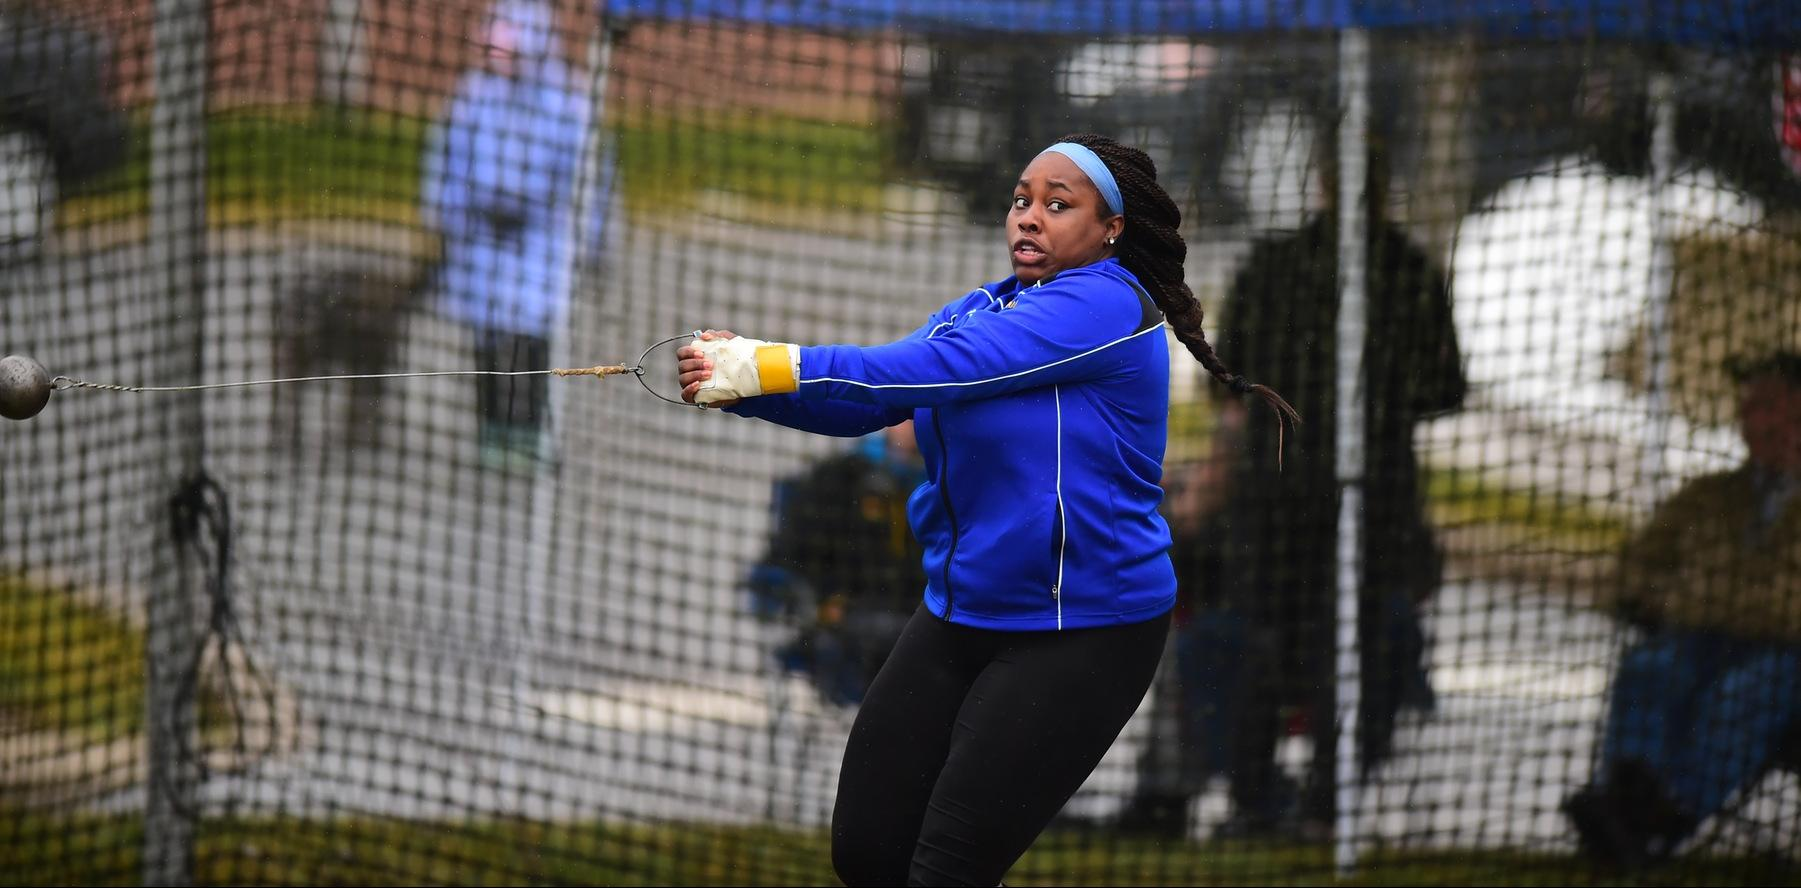 Goucher Has Five Top-5 Finishes at Mason-Dixon Invitational